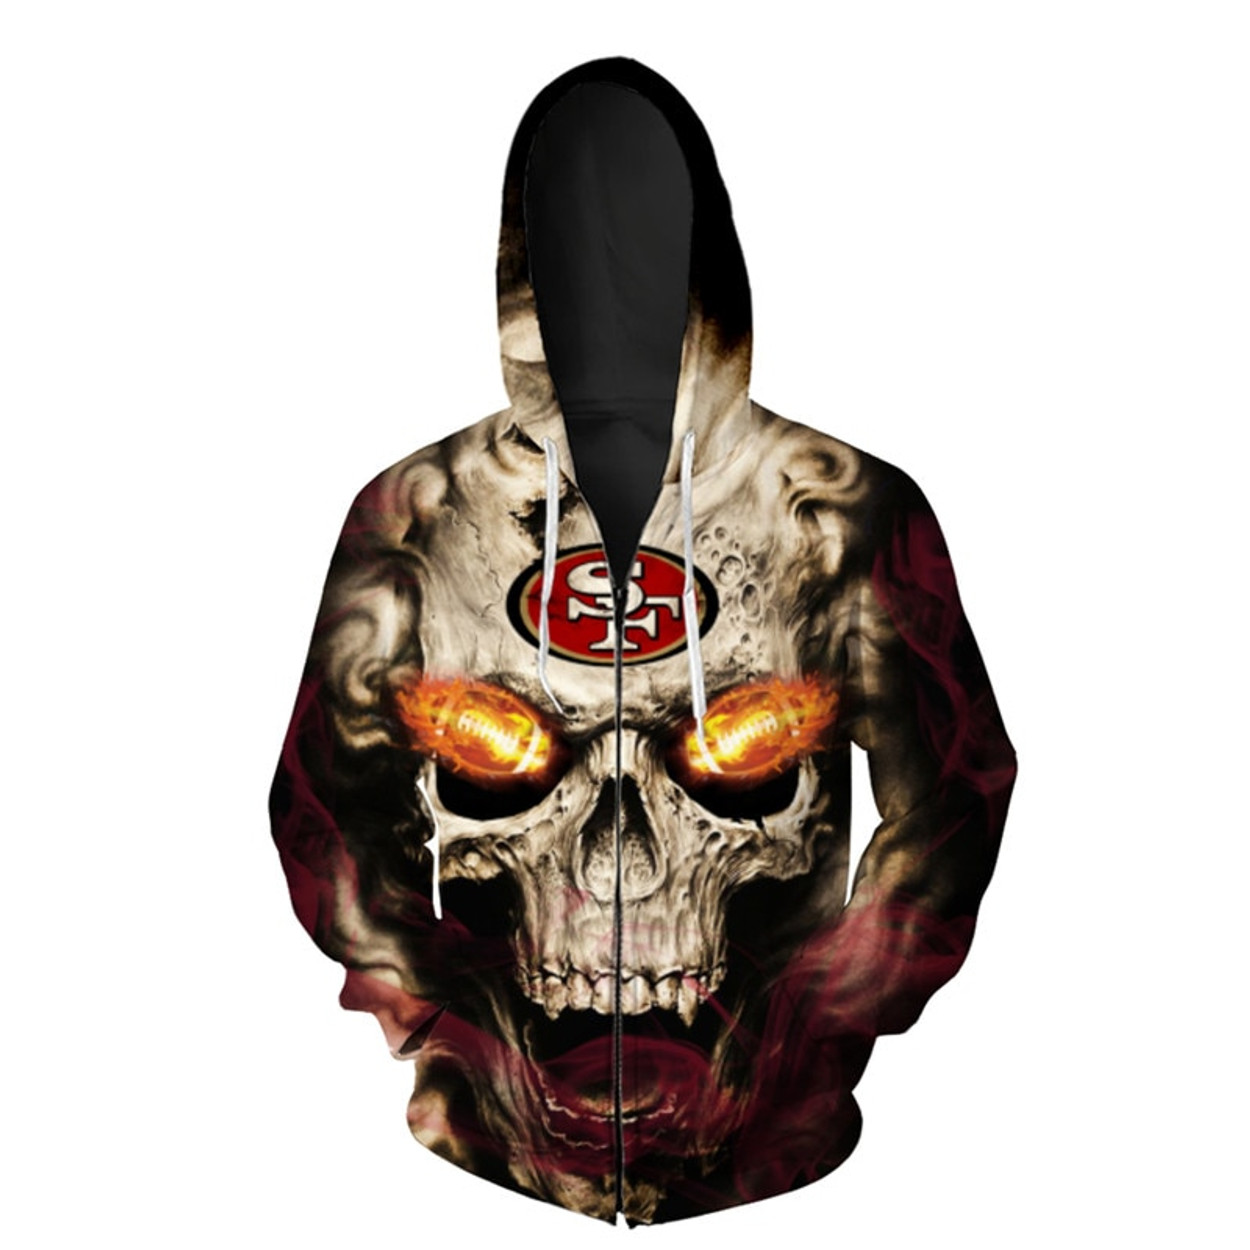 (OFFICIAL-N.F.L. SAN-FRANCISCO-49ERS-LOGO-ZIPPERED-HOODIES 3D-NEON-SKULL    SAN-FRANCISCO-49ERS-BLAZING-FOOTBALL ... 5a23d31be